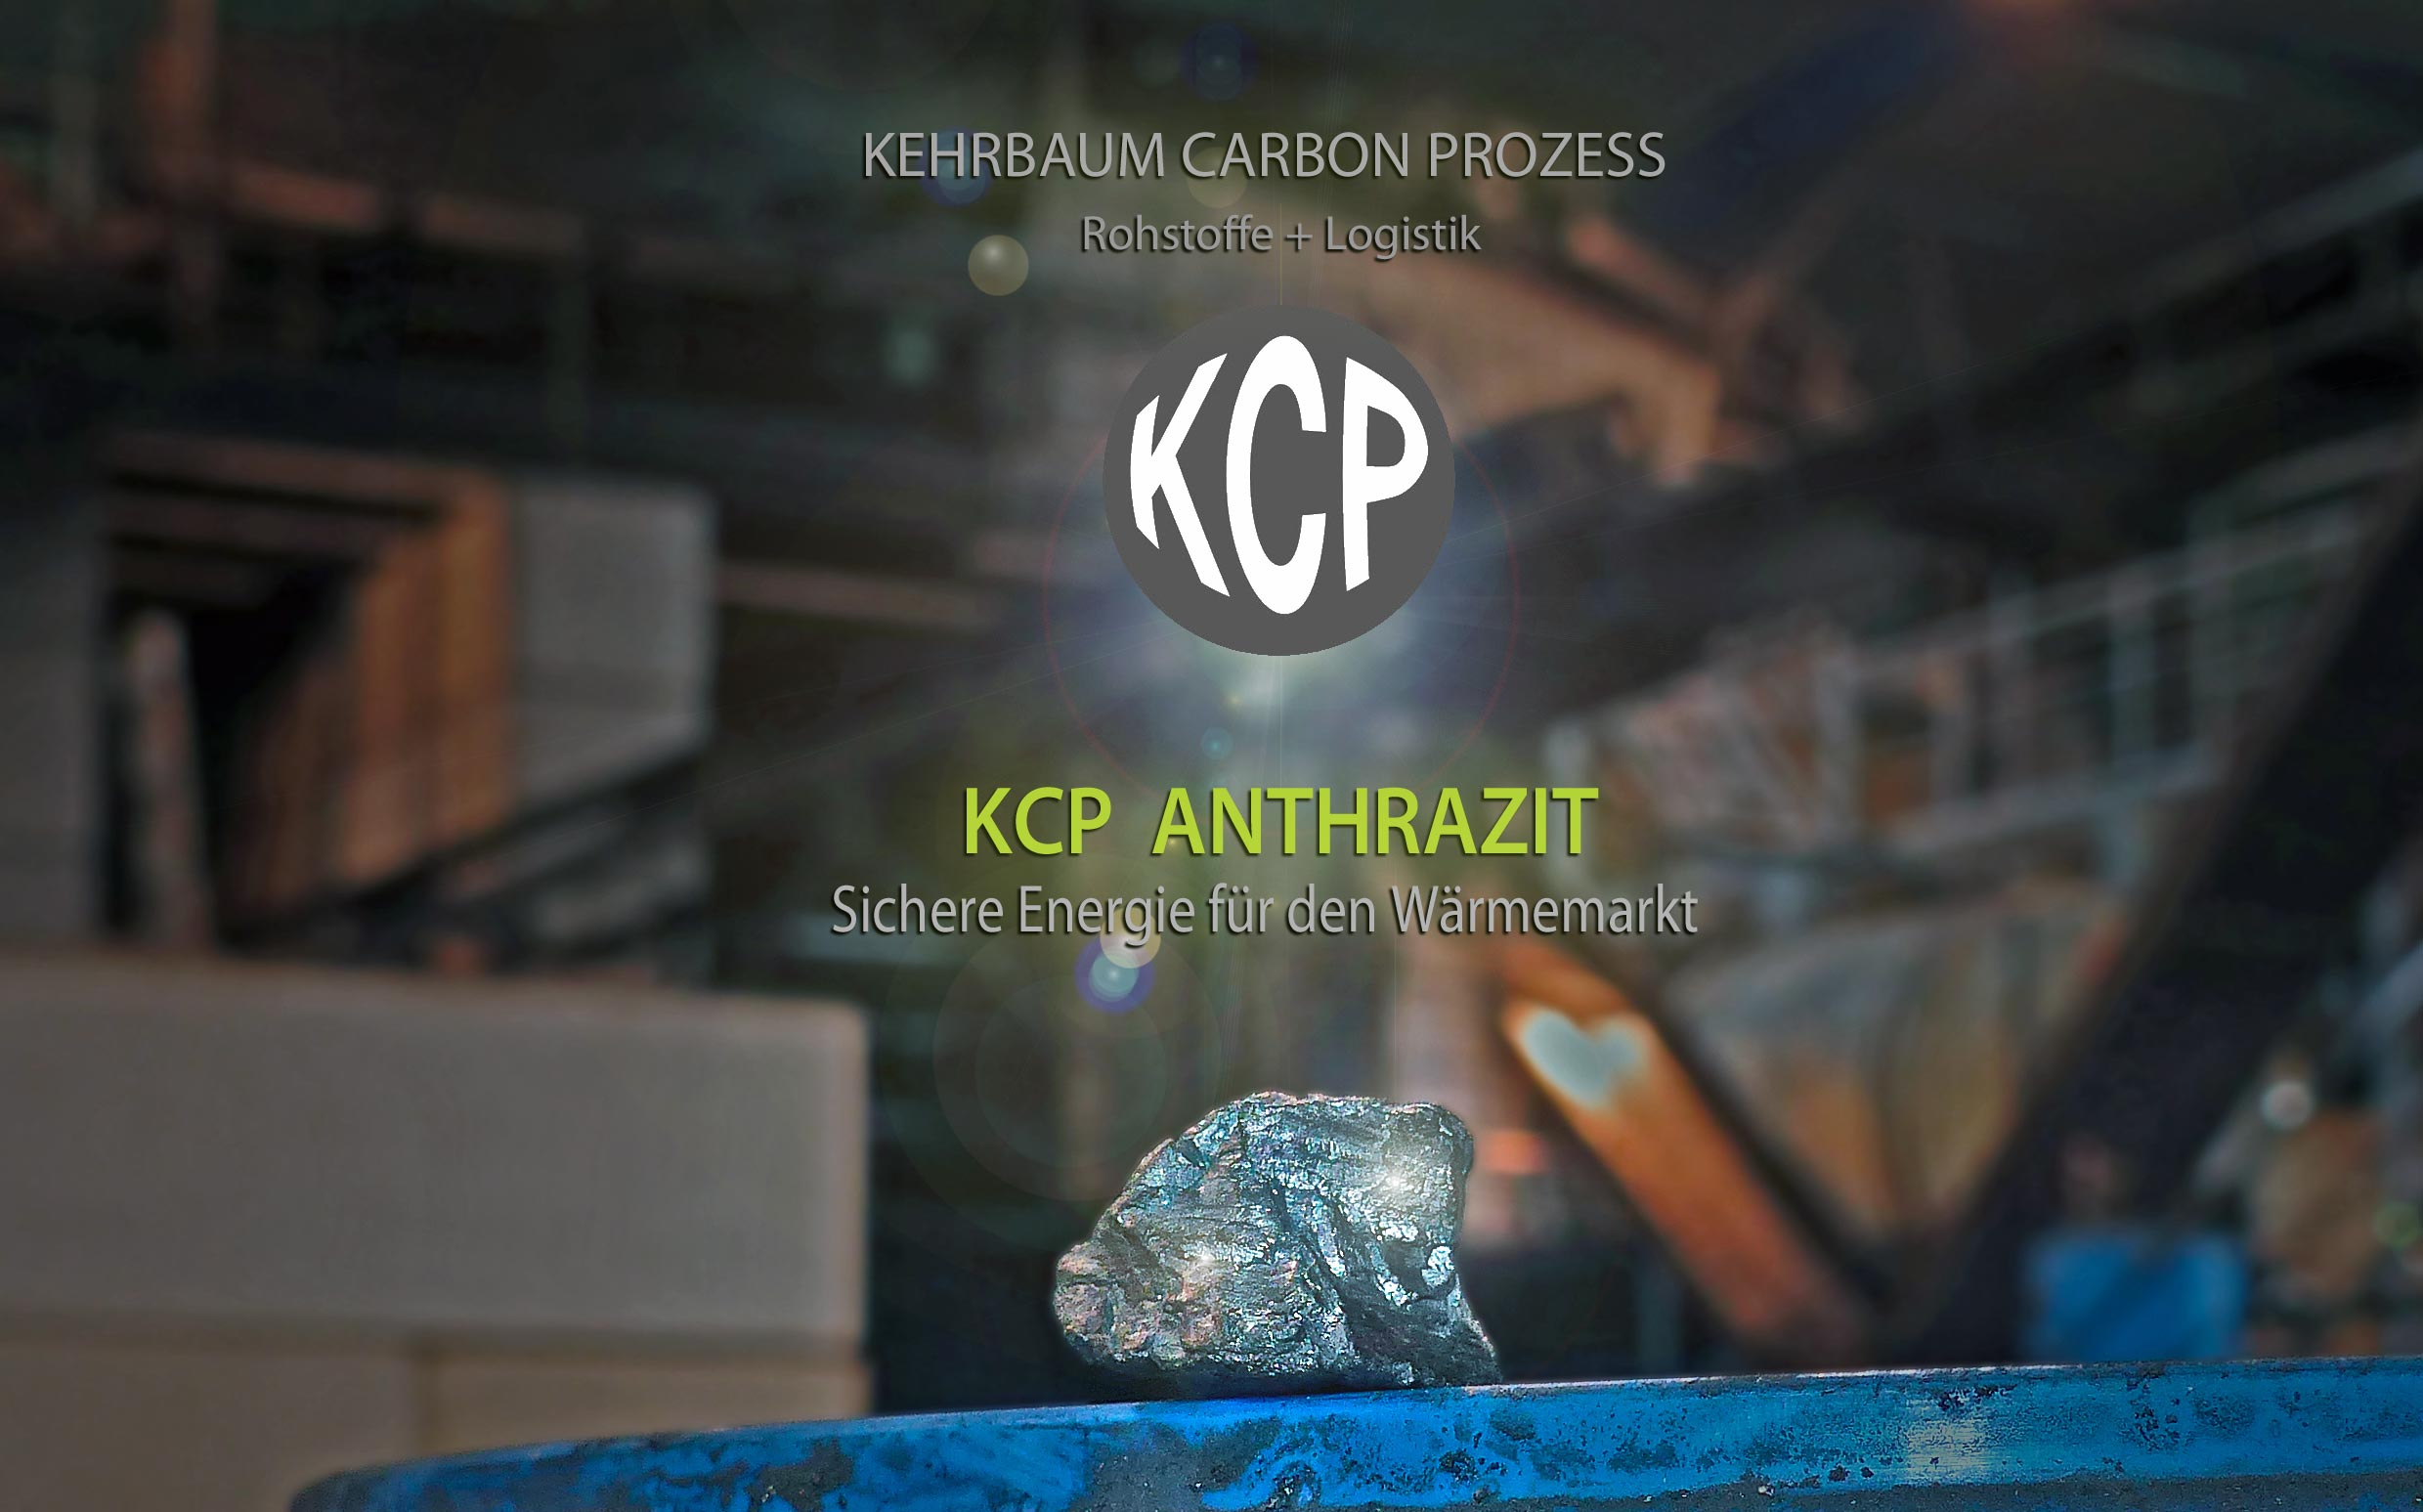 KCP ANTHRAZIT